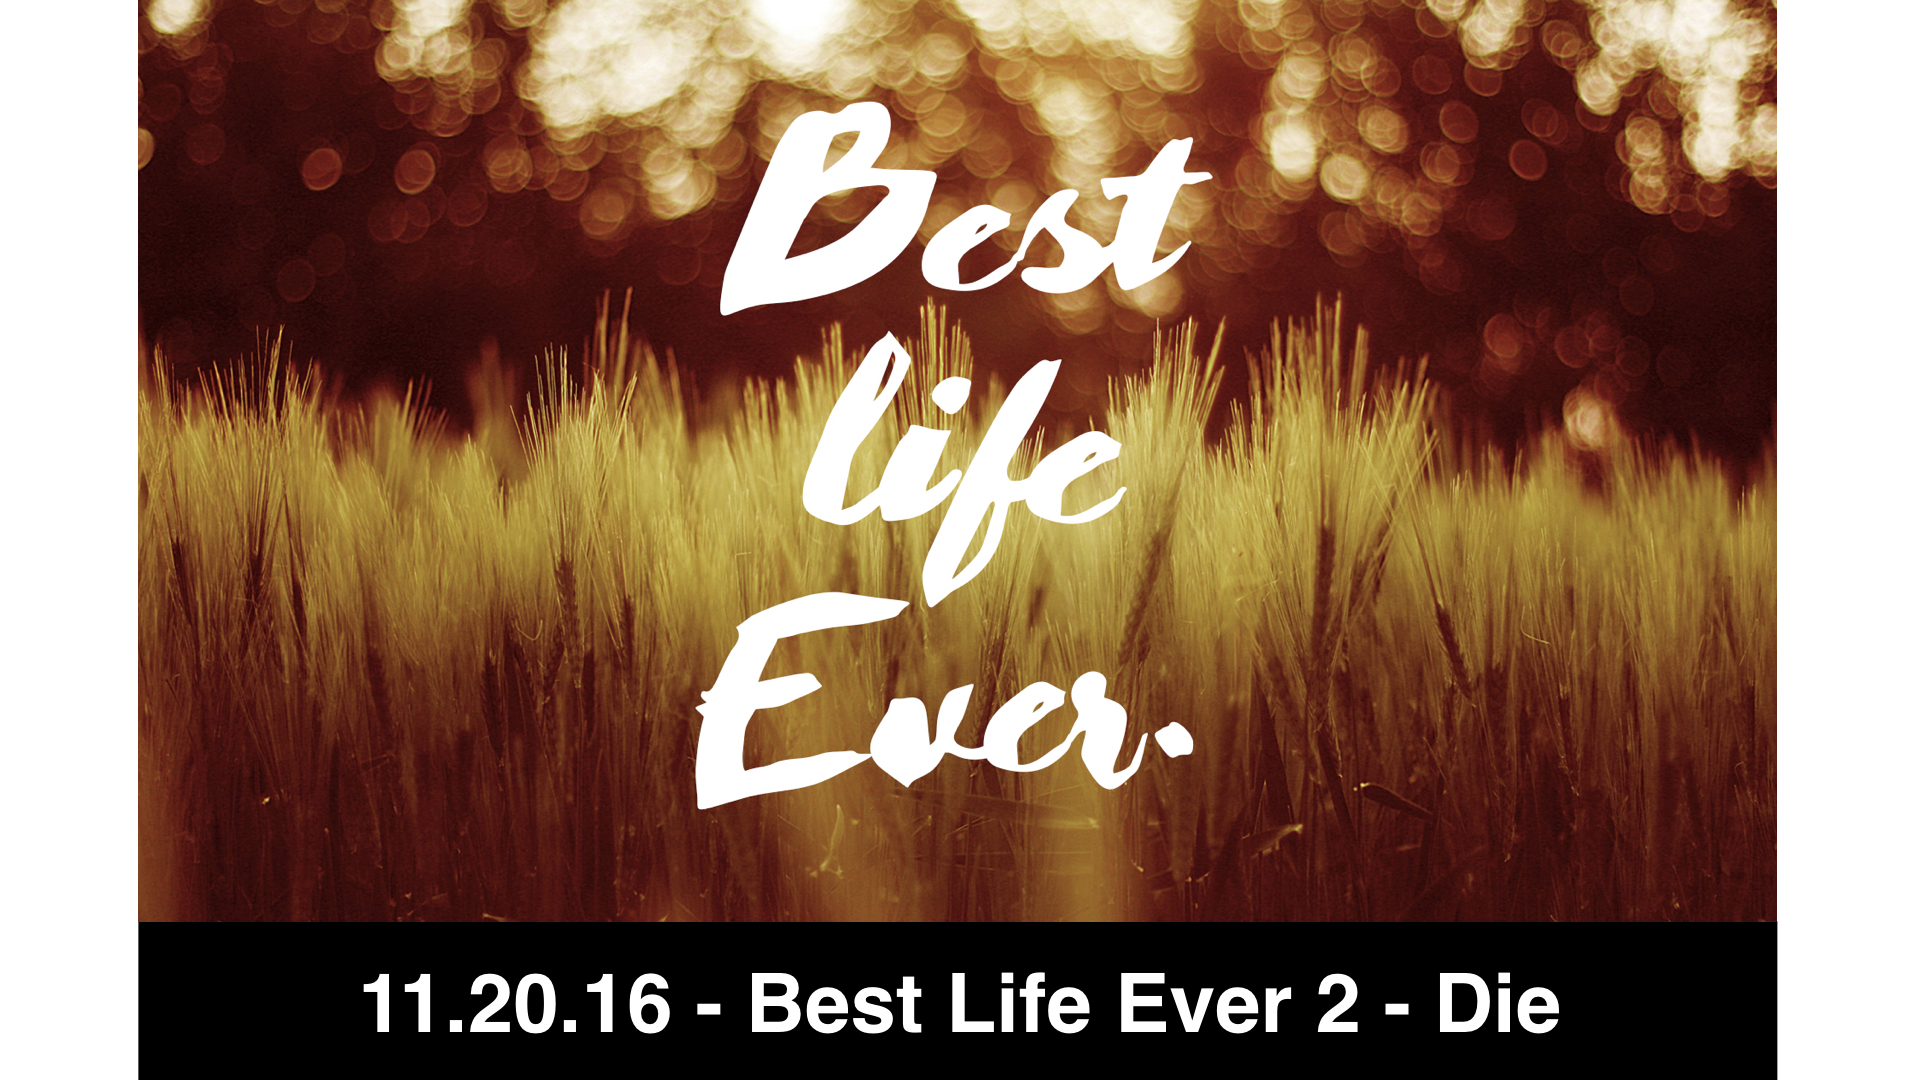 11.20.16 - Best Life Ever 2 - Die